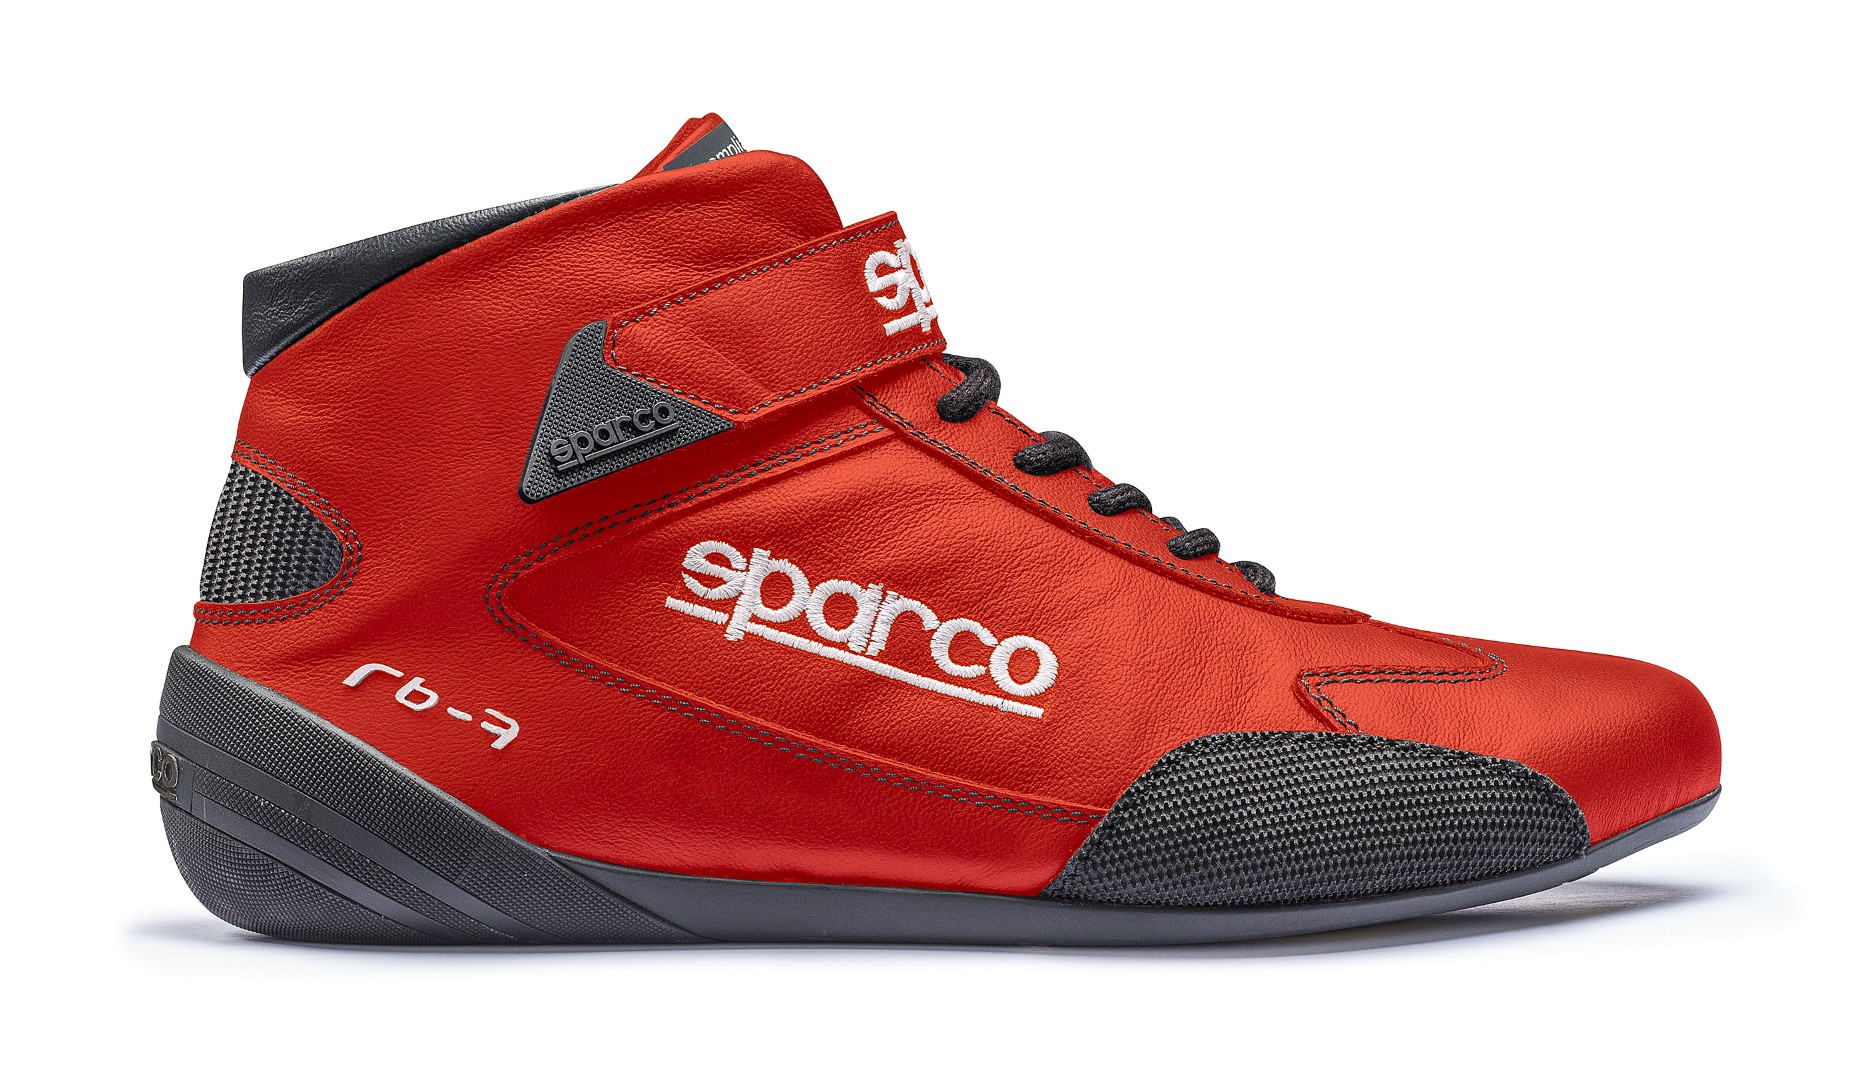 Sparco Red Cross RB-7 Driving Shoes EU 36 - 00122436RS